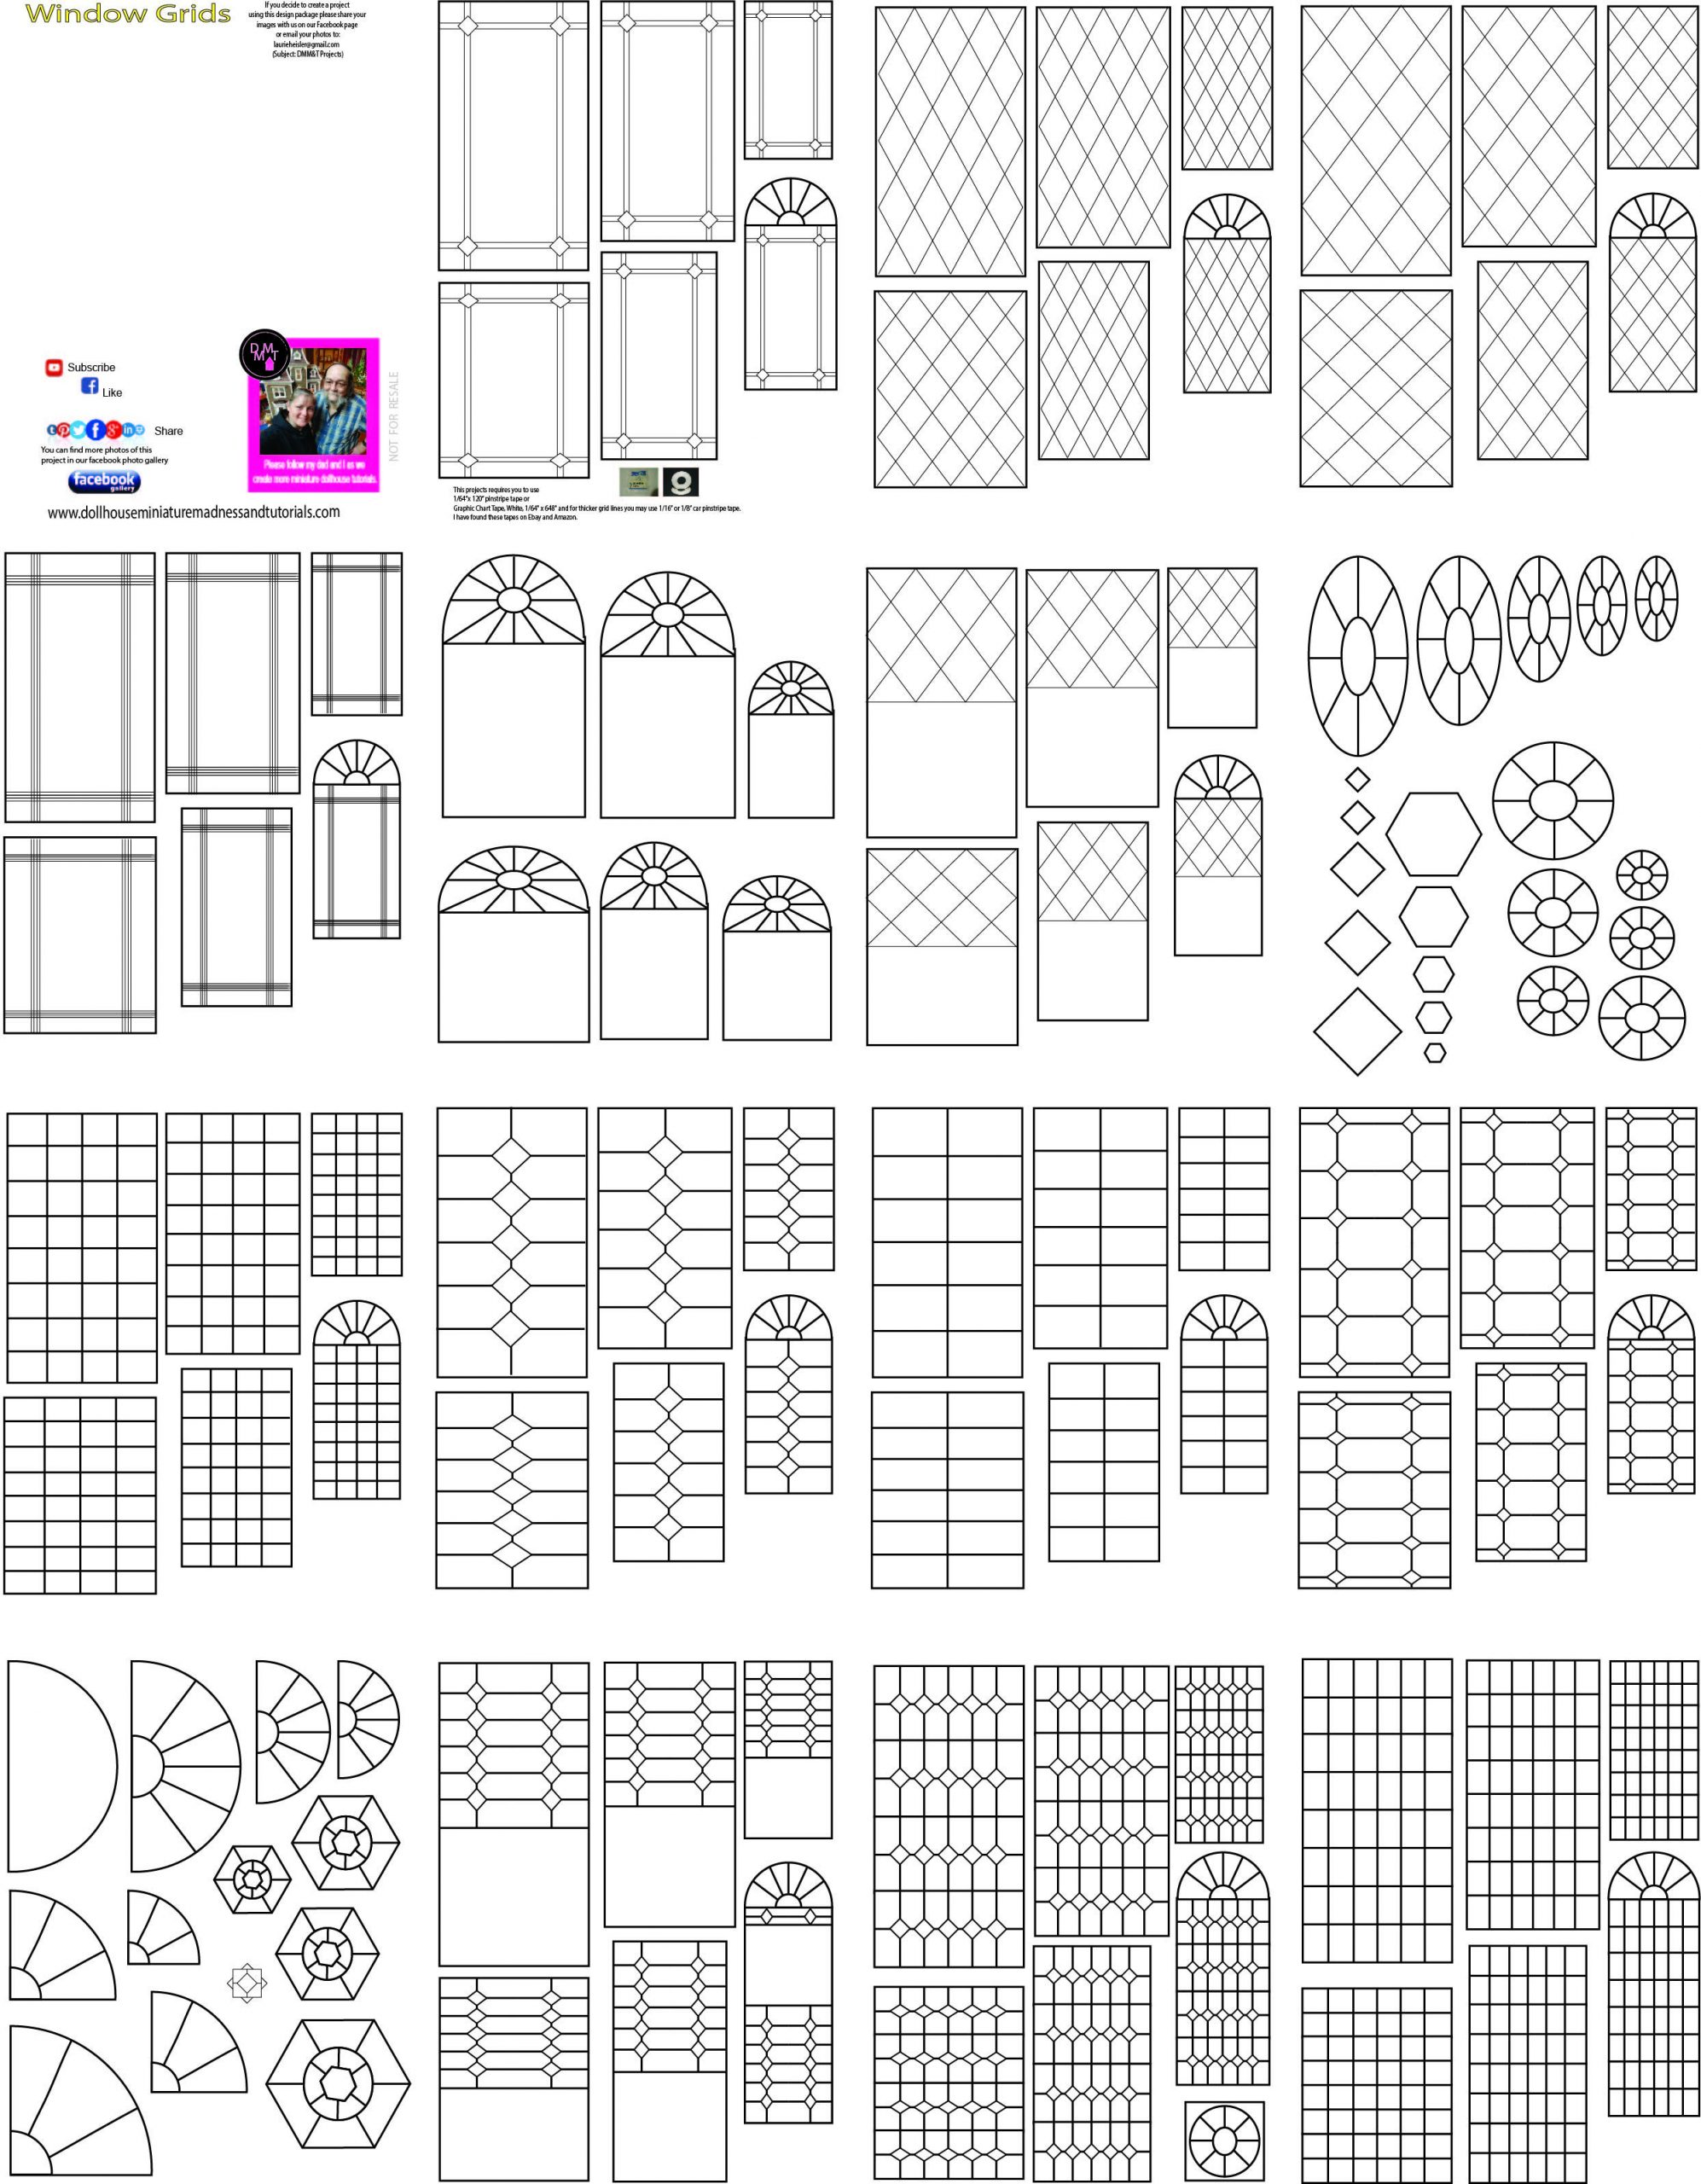 Templates-Other Misc | Doll House, Ruler Gifts, Templates